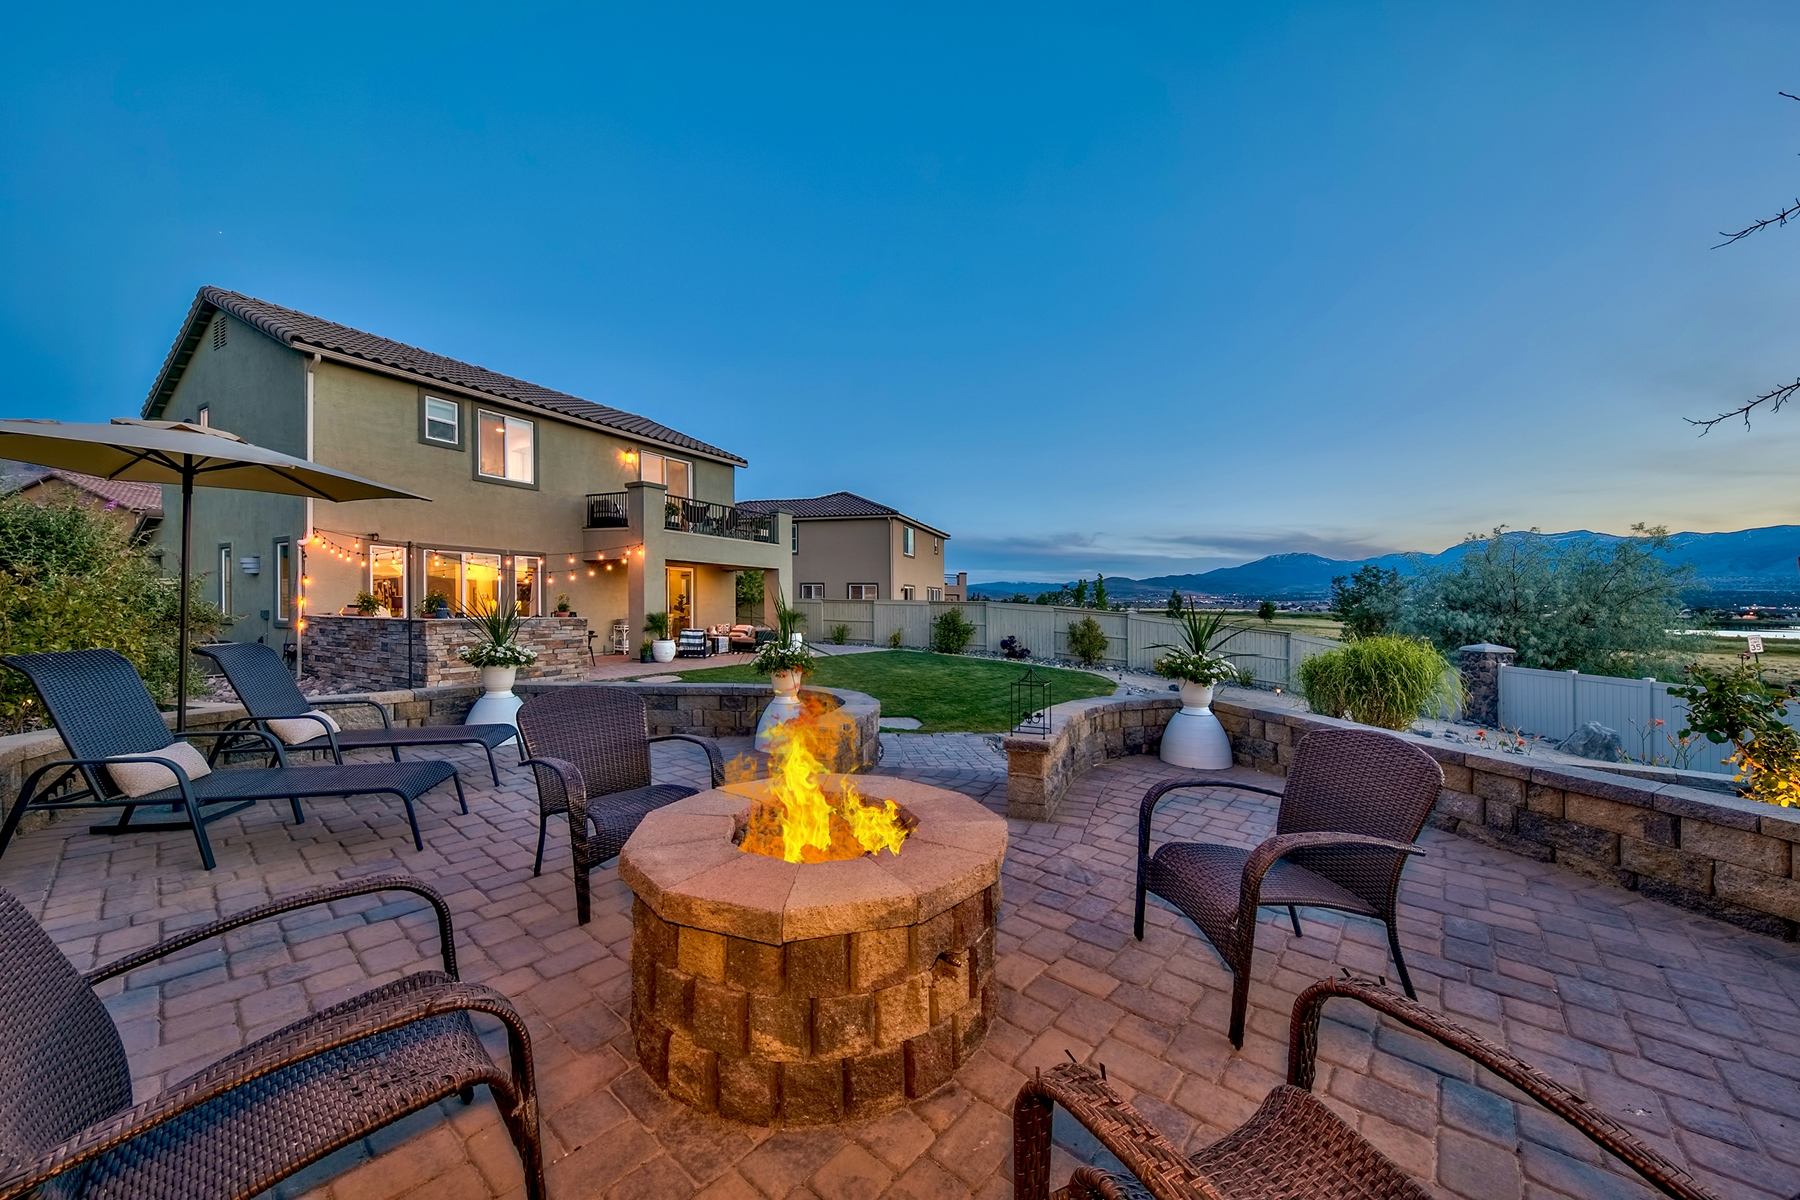 Single Family Homes for Active at 2835 Show Jumper Lane, Reno, Nevada 2835 Show Jumper Lane Reno, Nevada 89521 United States